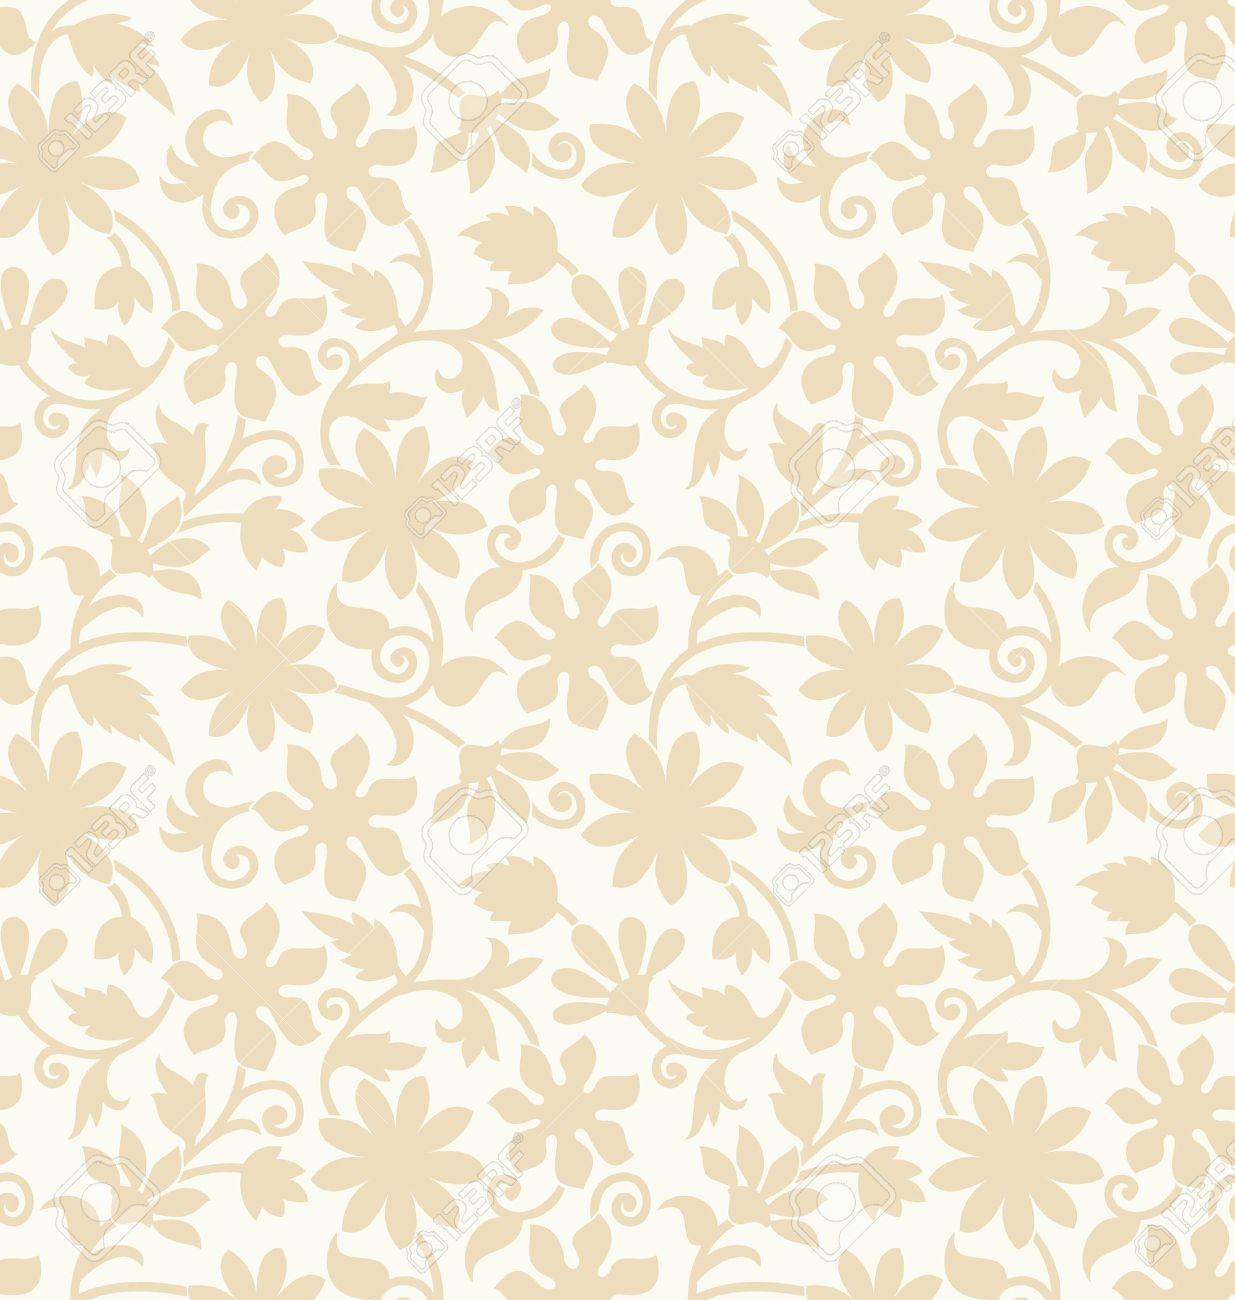 Seamless invitation card backgroundpattern royalty free cliparts seamless invitation card backgroundpattern stock vector 18309224 stopboris Image collections